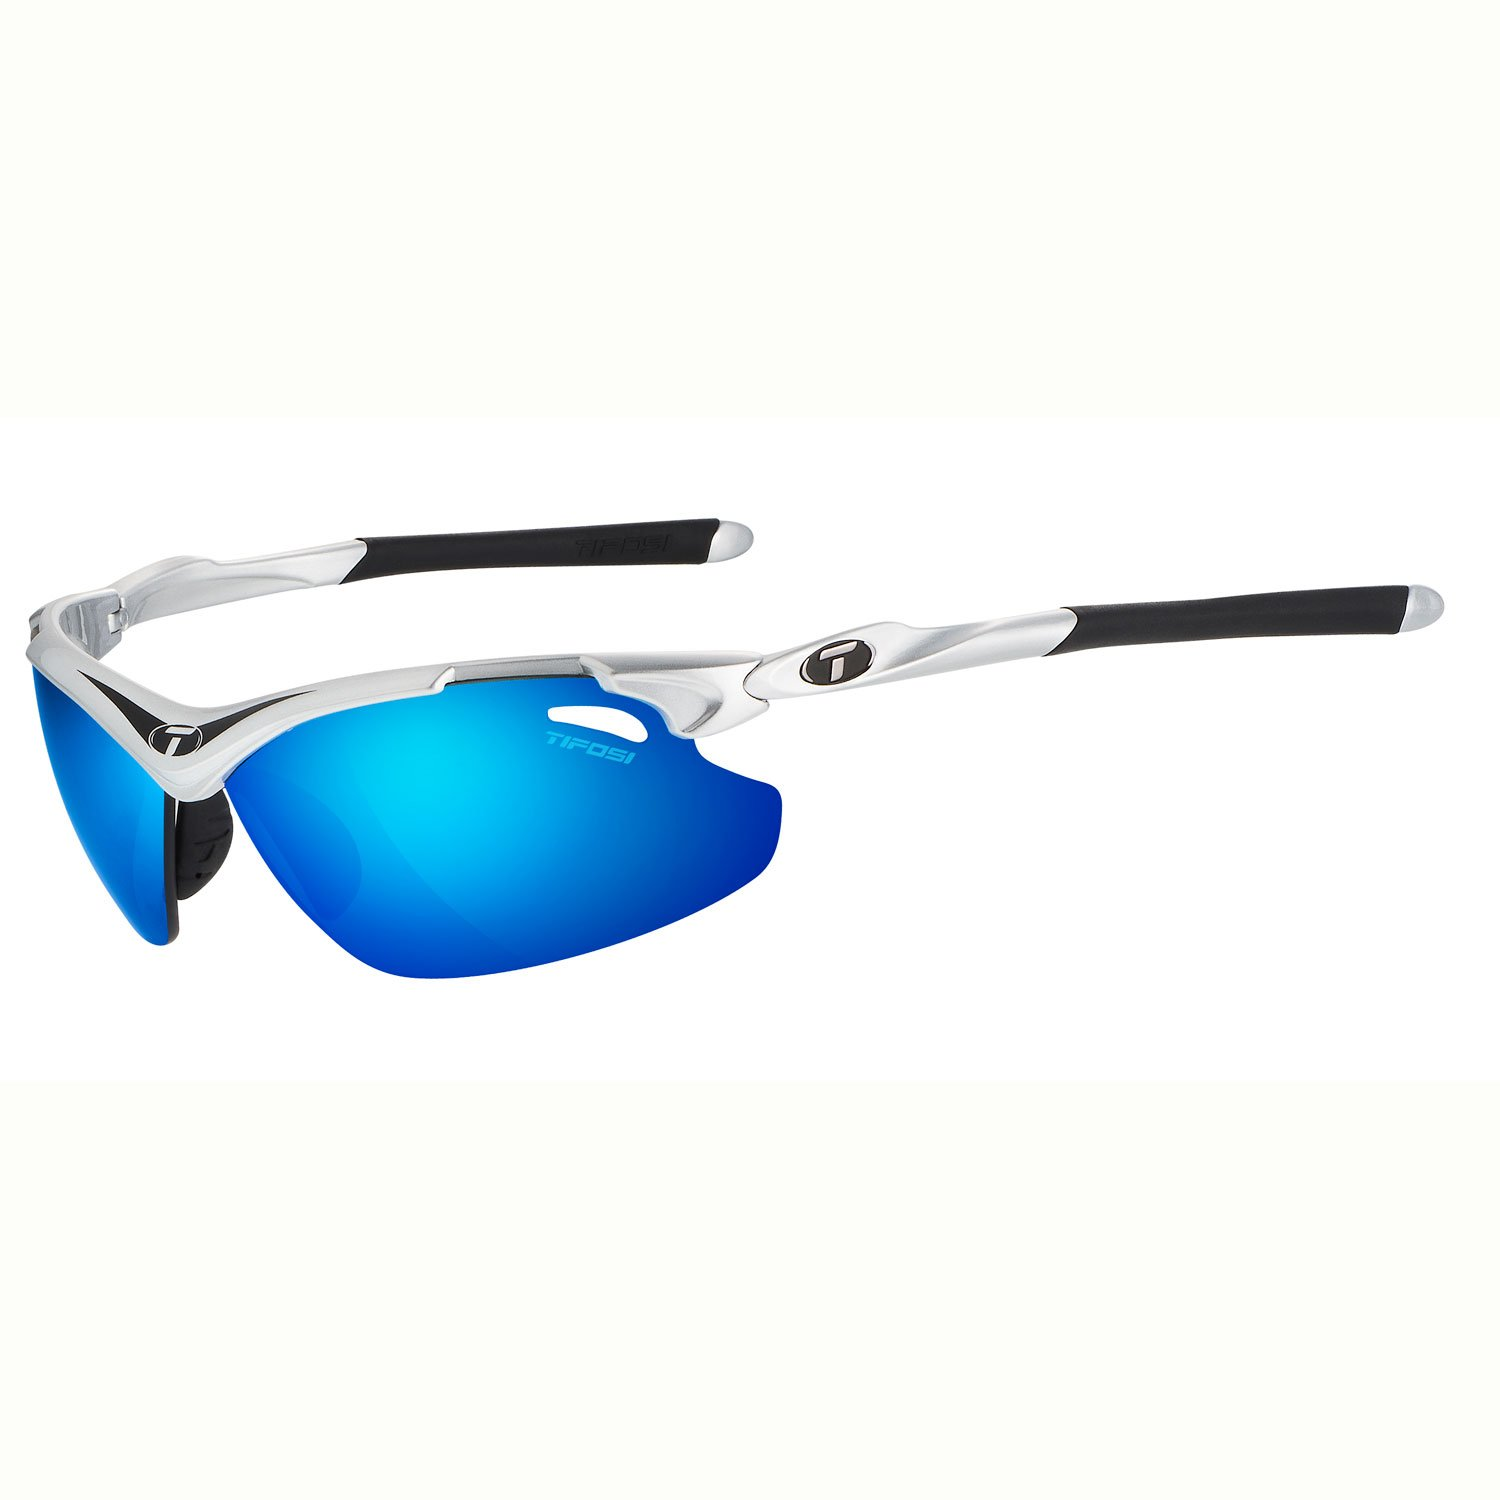 Tifosi TYRANT 2.0 Race Black Clarion Blue Polarized Sunglasses